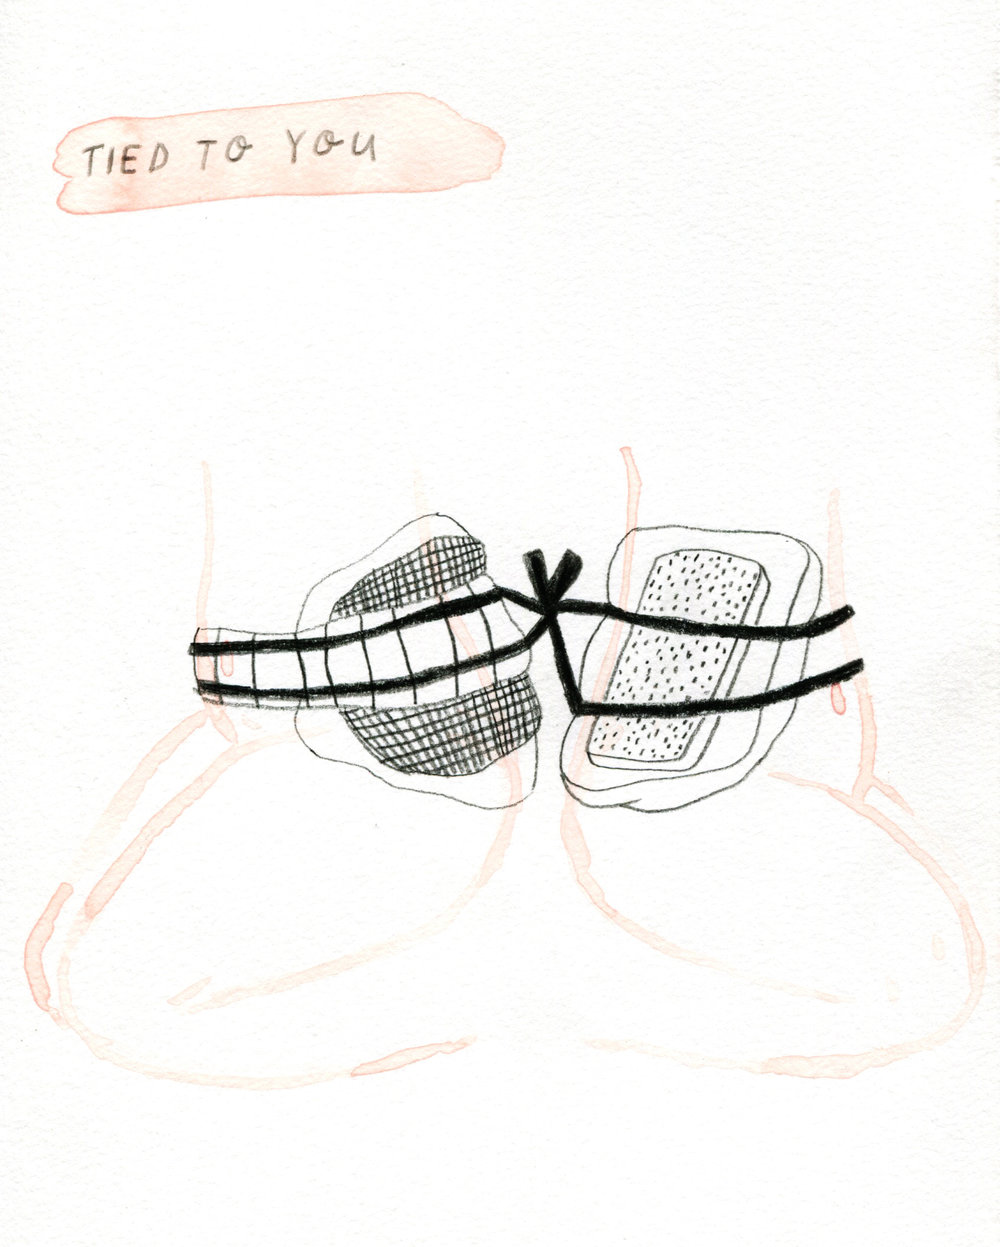 Tied to you.jpg